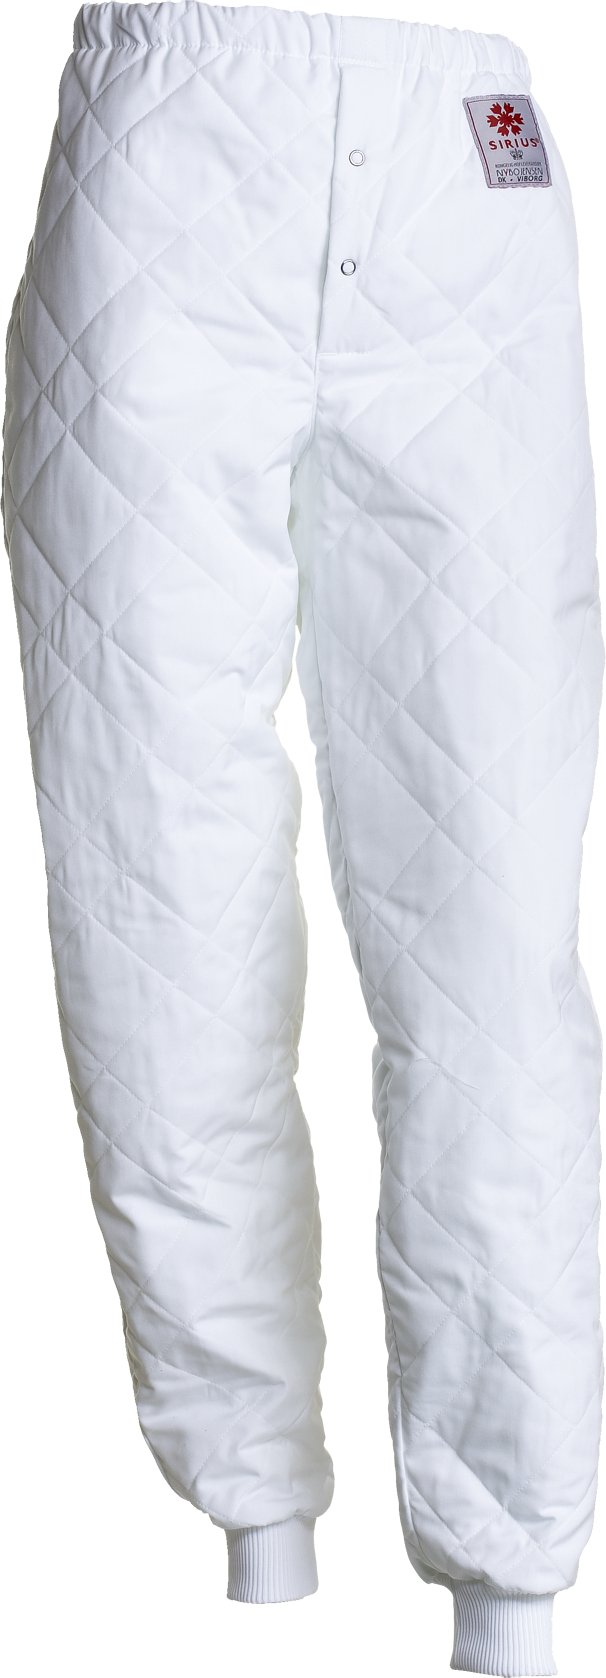 Thermal trousers, Clima Sport (401001100)